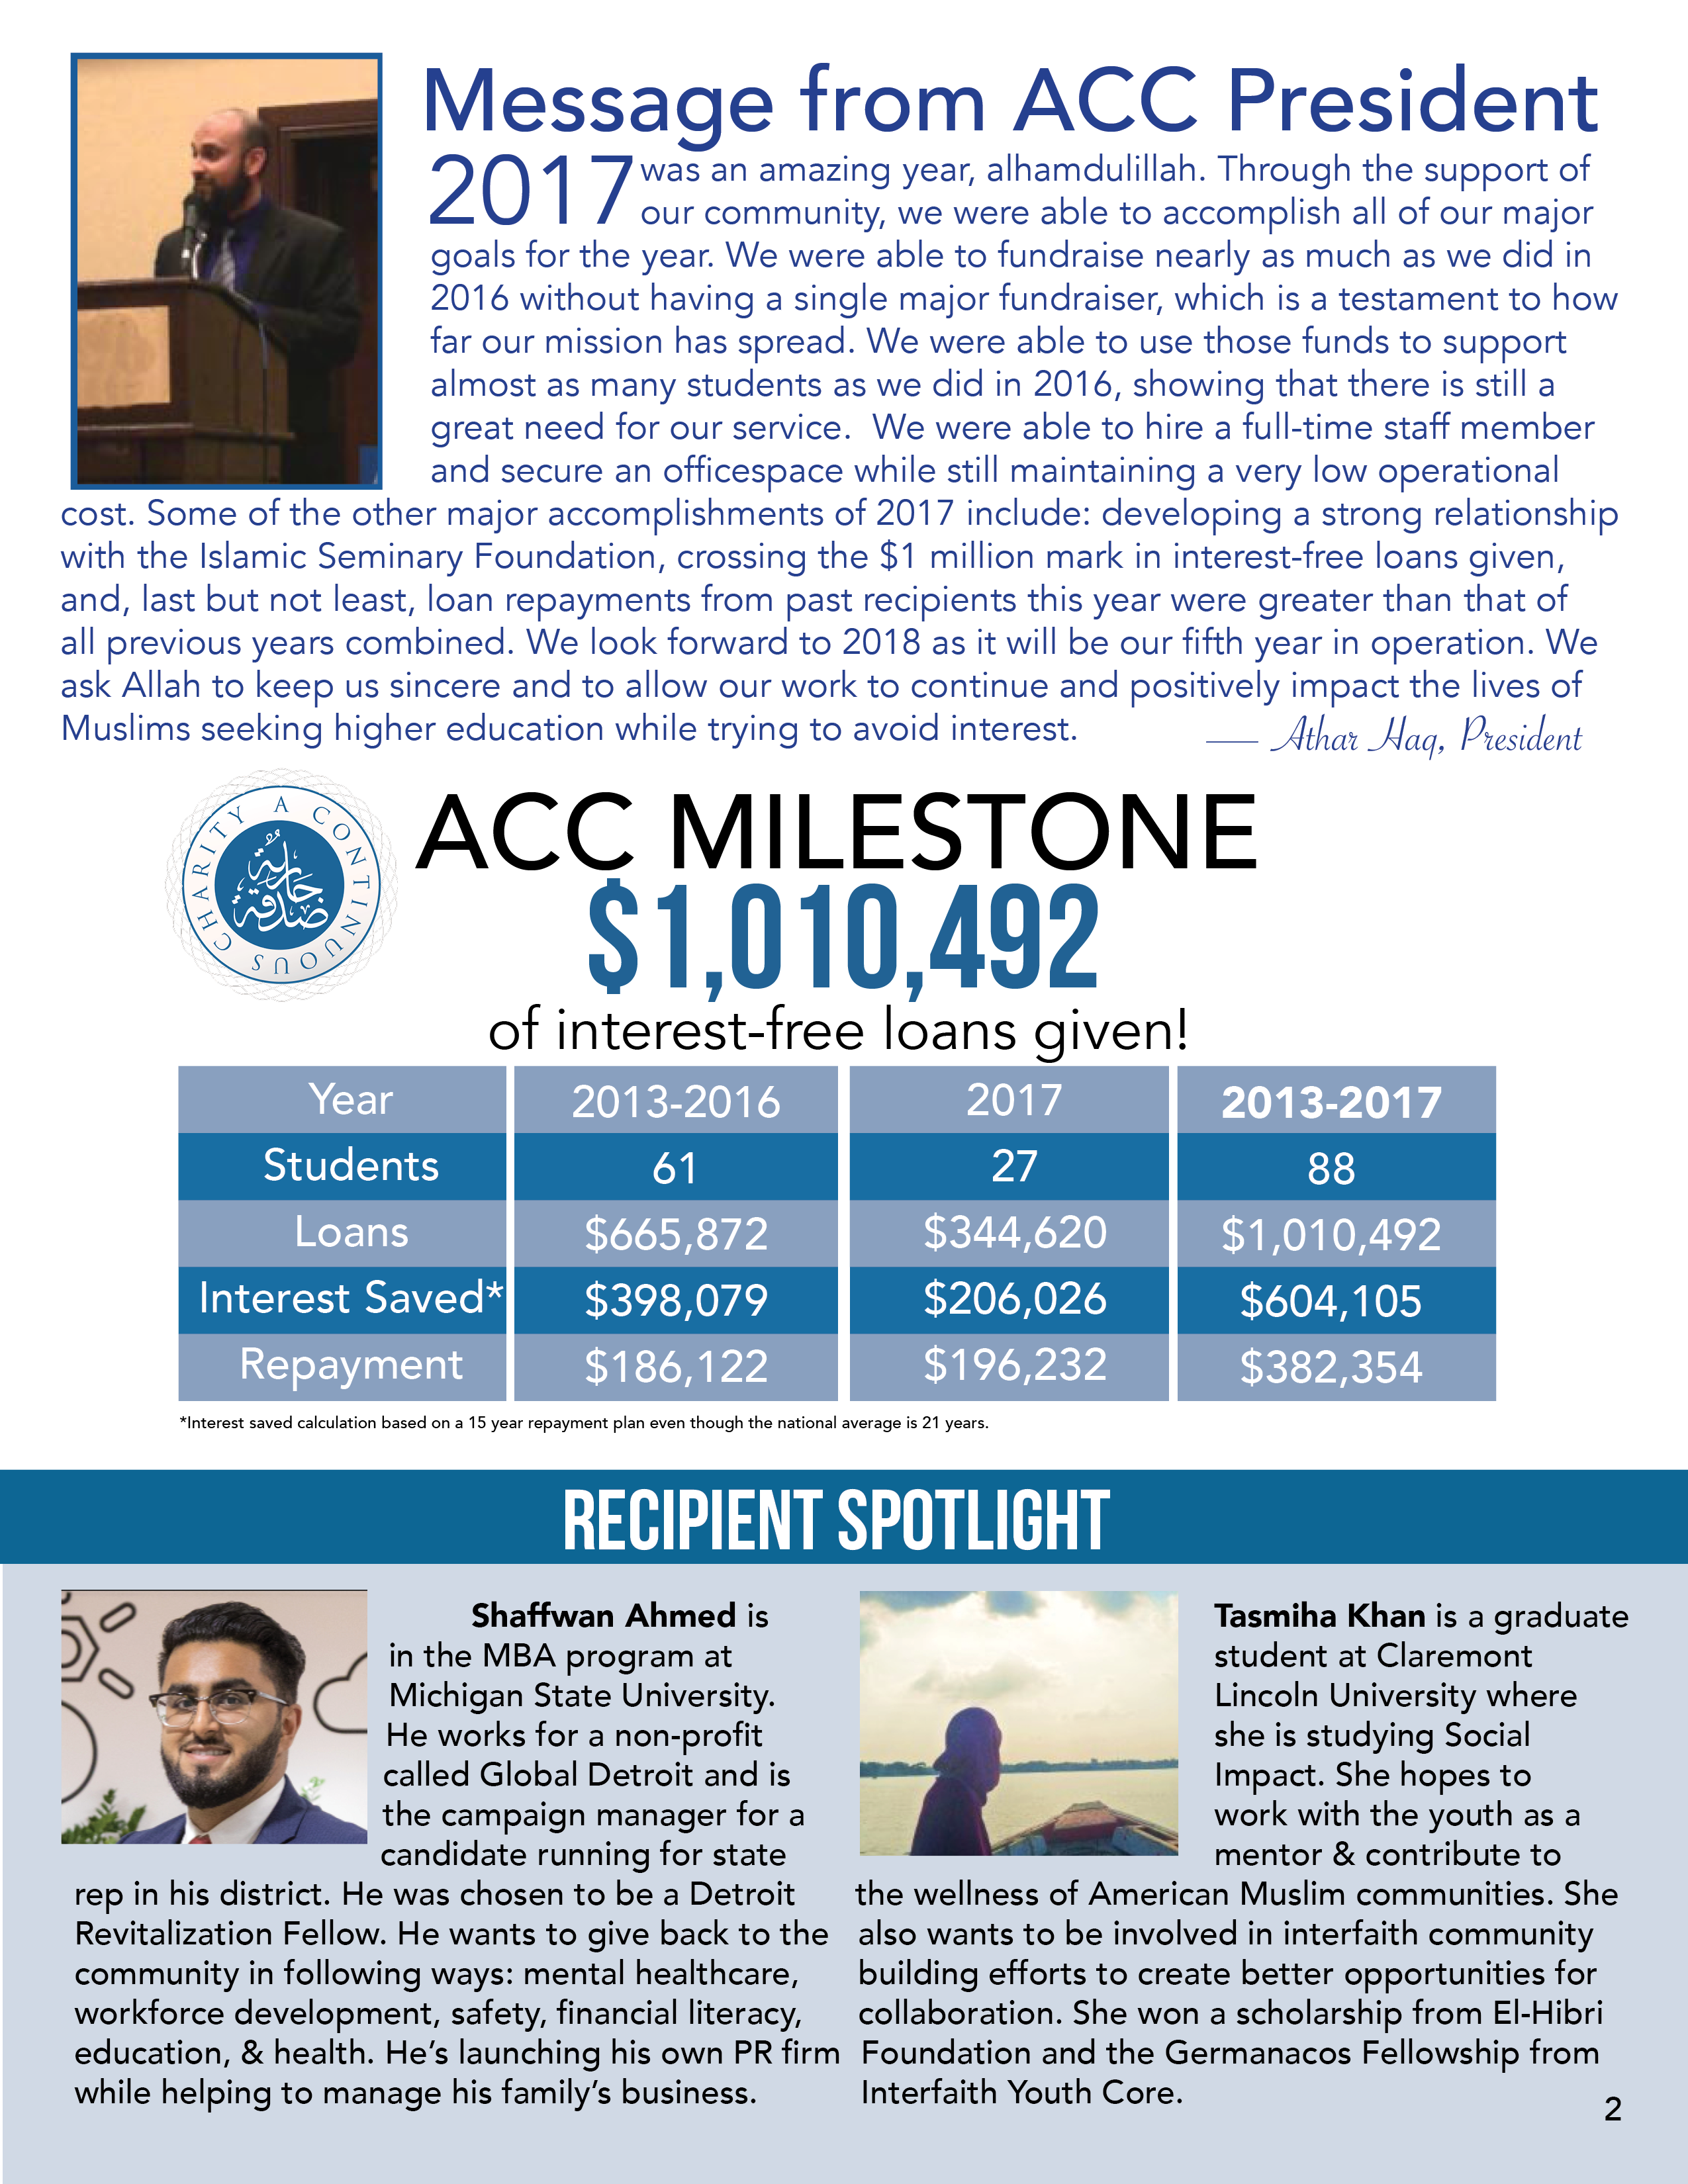 ACC Annual Report Page 2